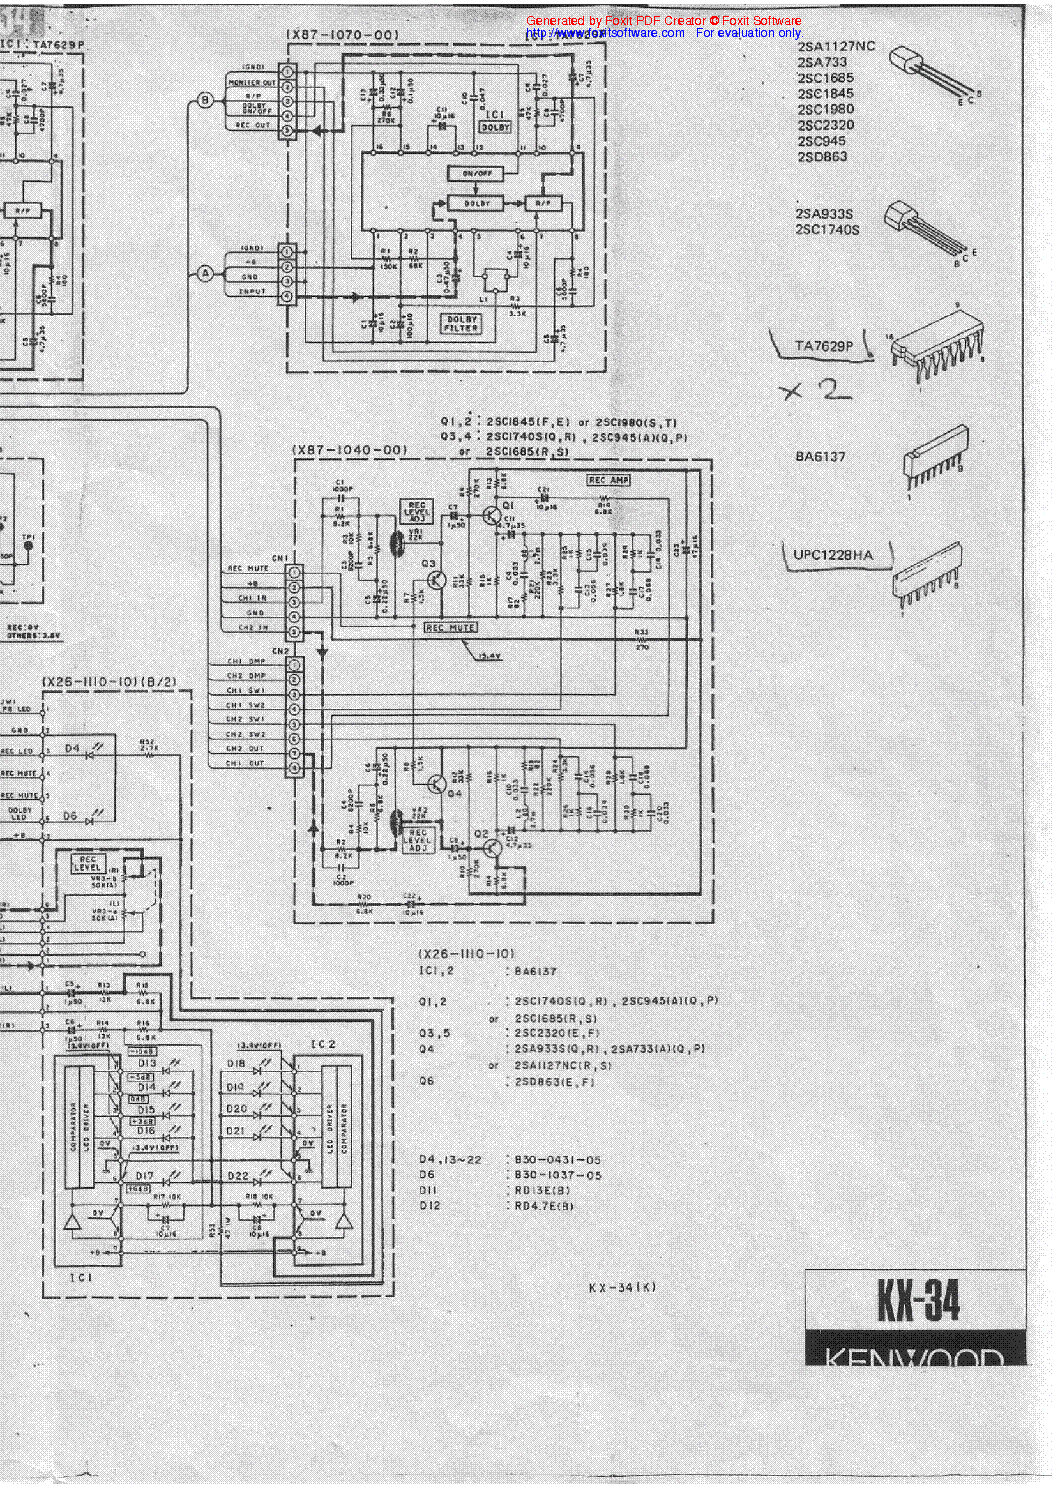 KENWOOD KX-34 SCH Service Manual download, schematics